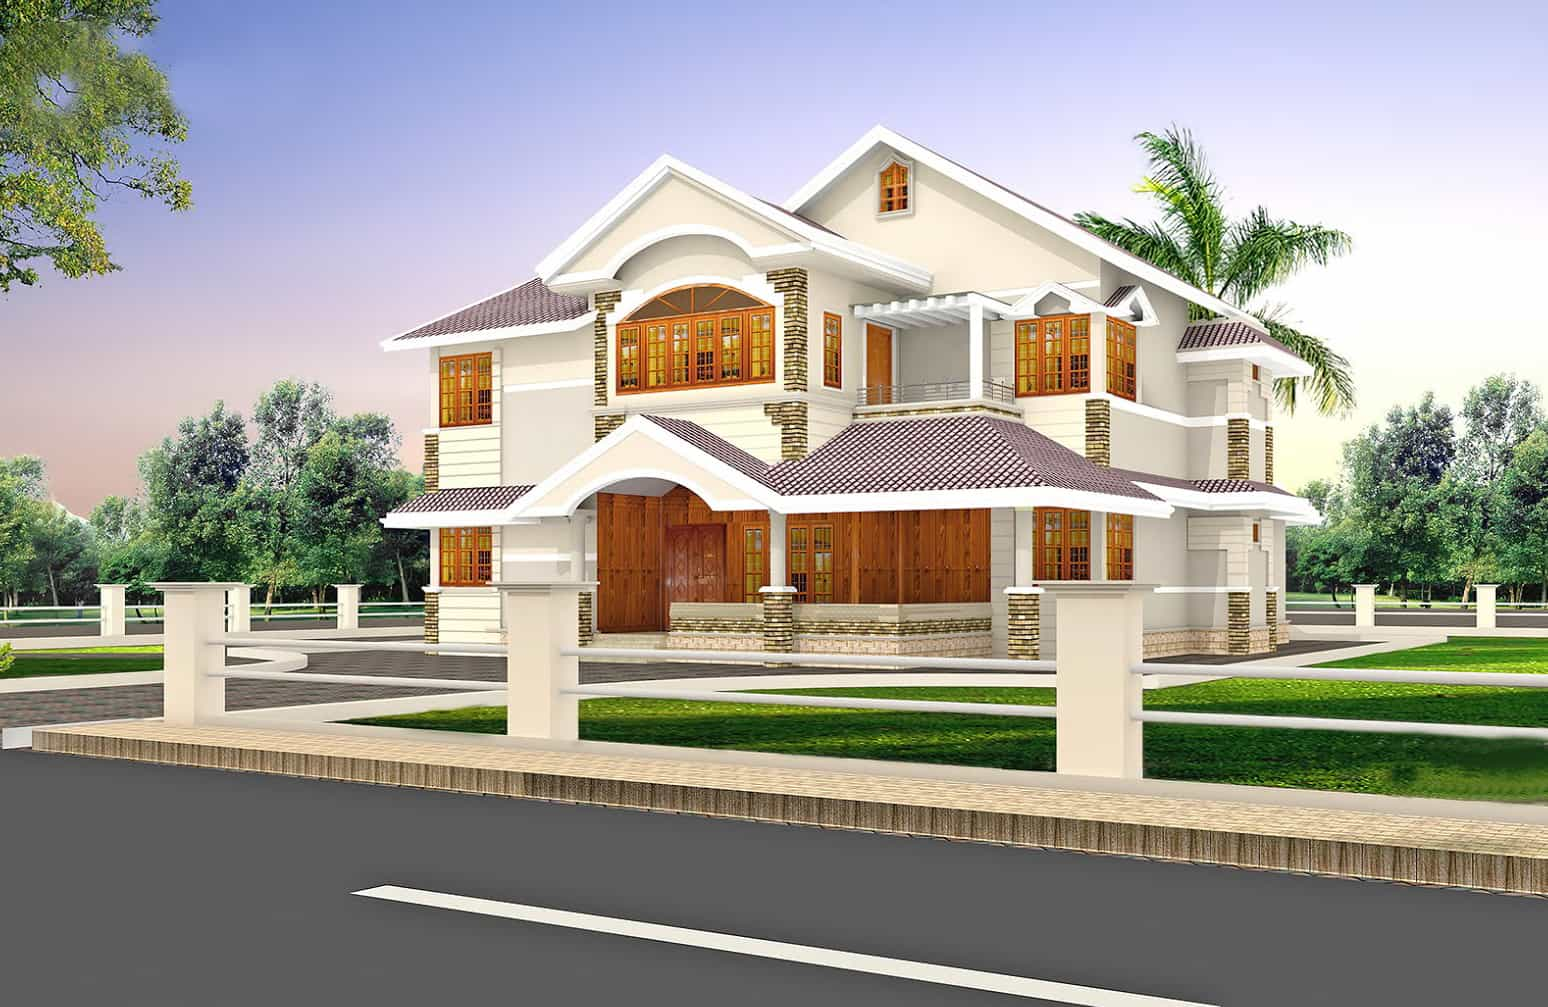 4bhk house plans keralahouseplanner Make home design